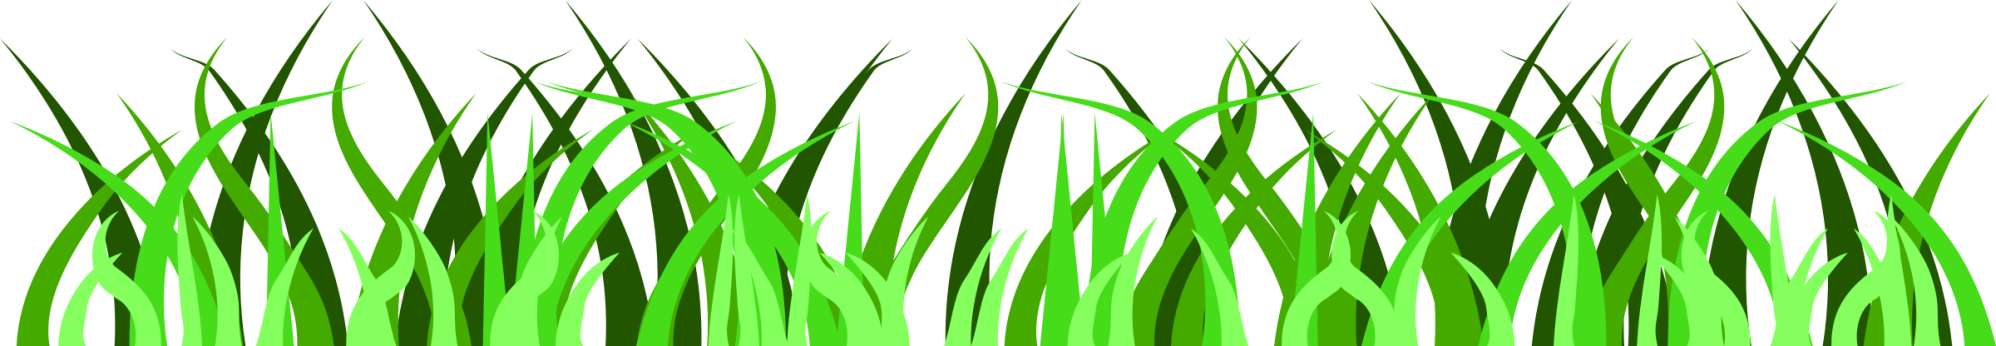 hight resolution of 2400x416 stone clipart grass border